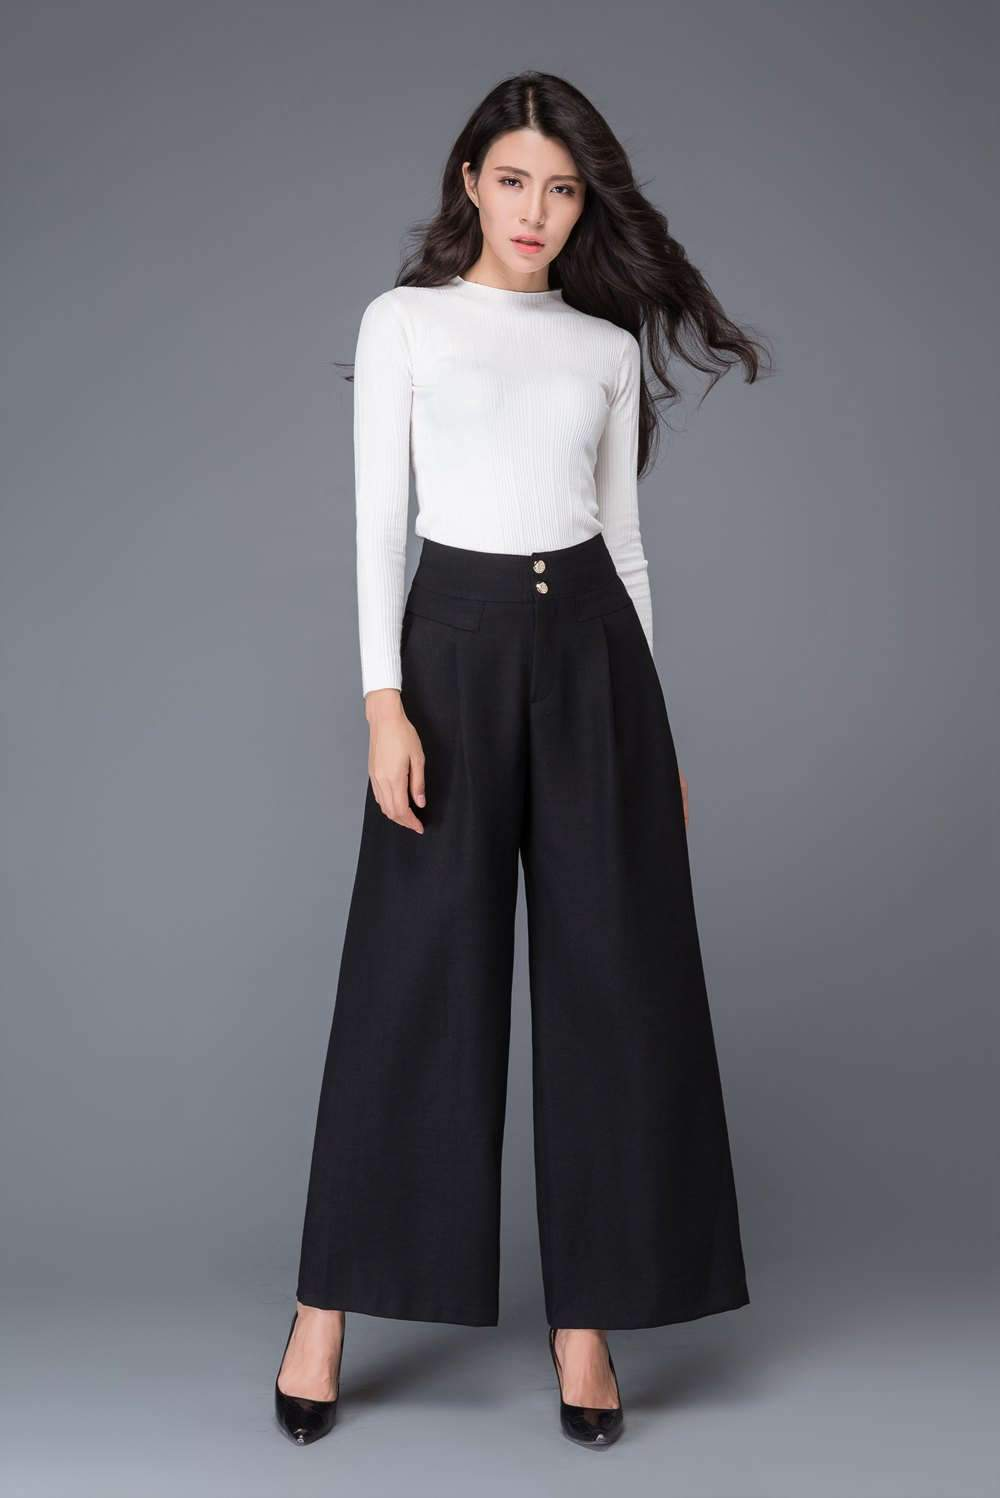 Black wool pants, Womens long wool pants, winter wide leg wool pants, black wool palazzo pants, winter warm pant with pockets C1014